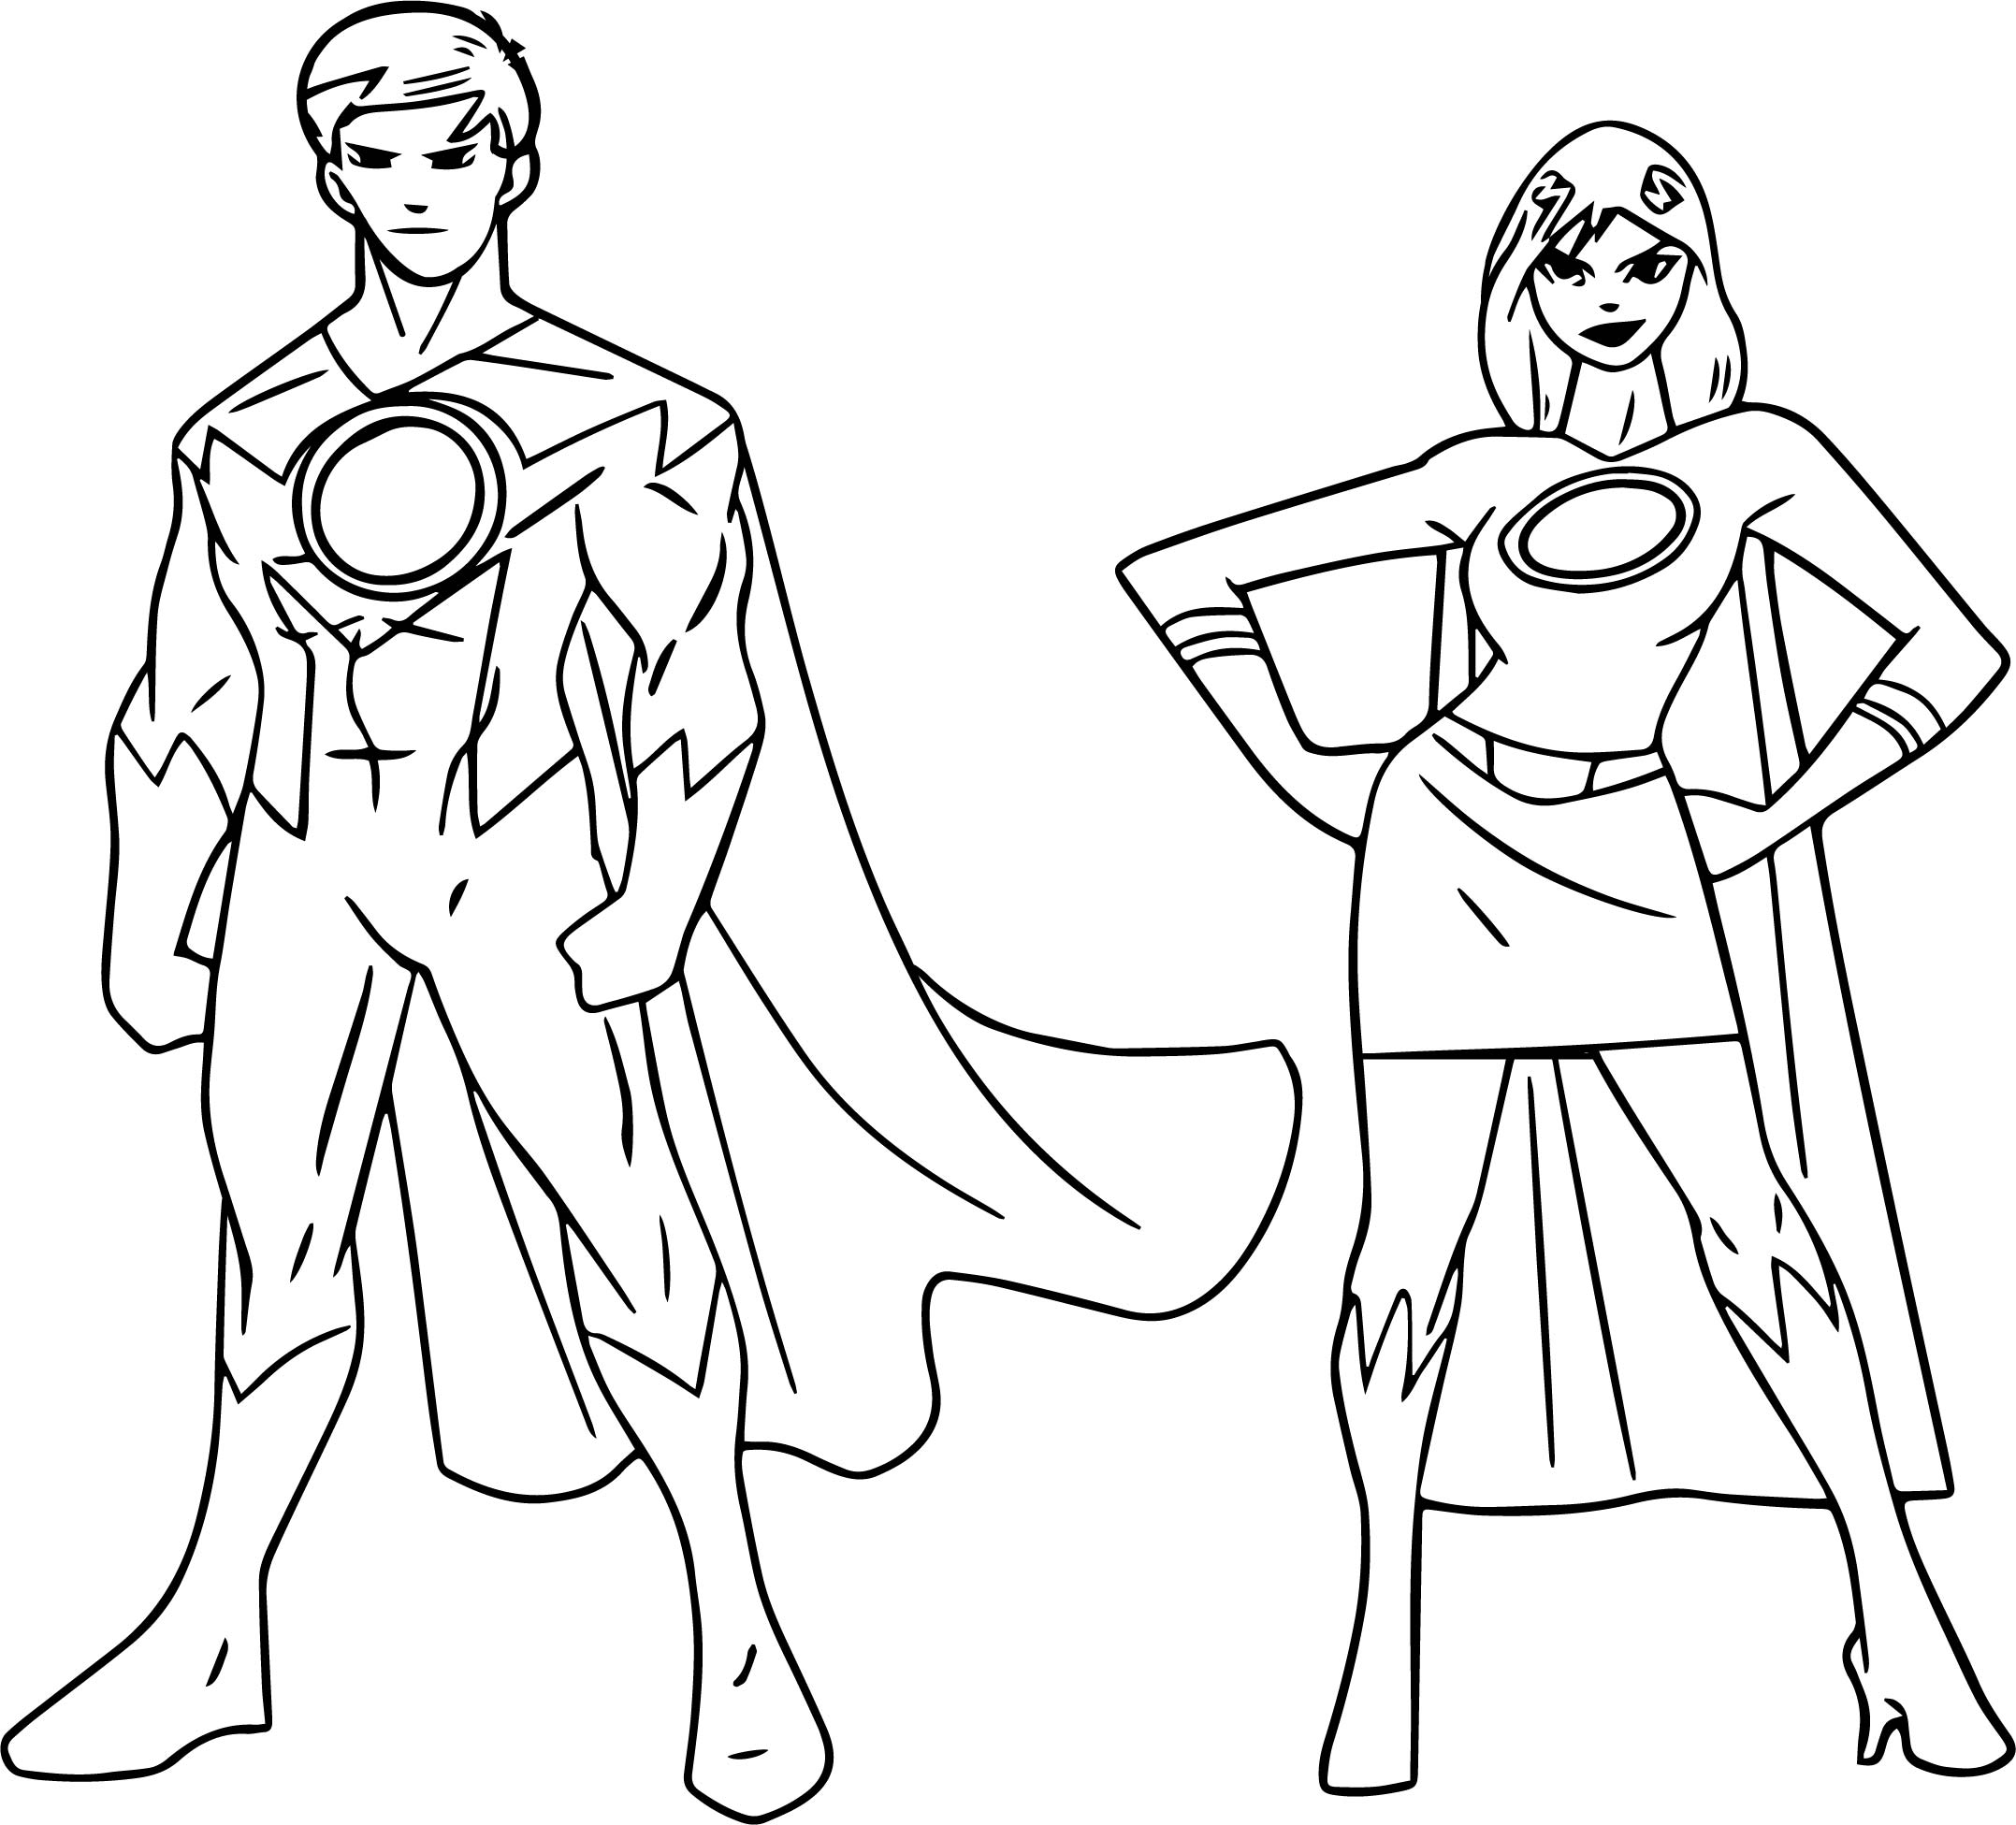 Superhero Coloring Pages Boys